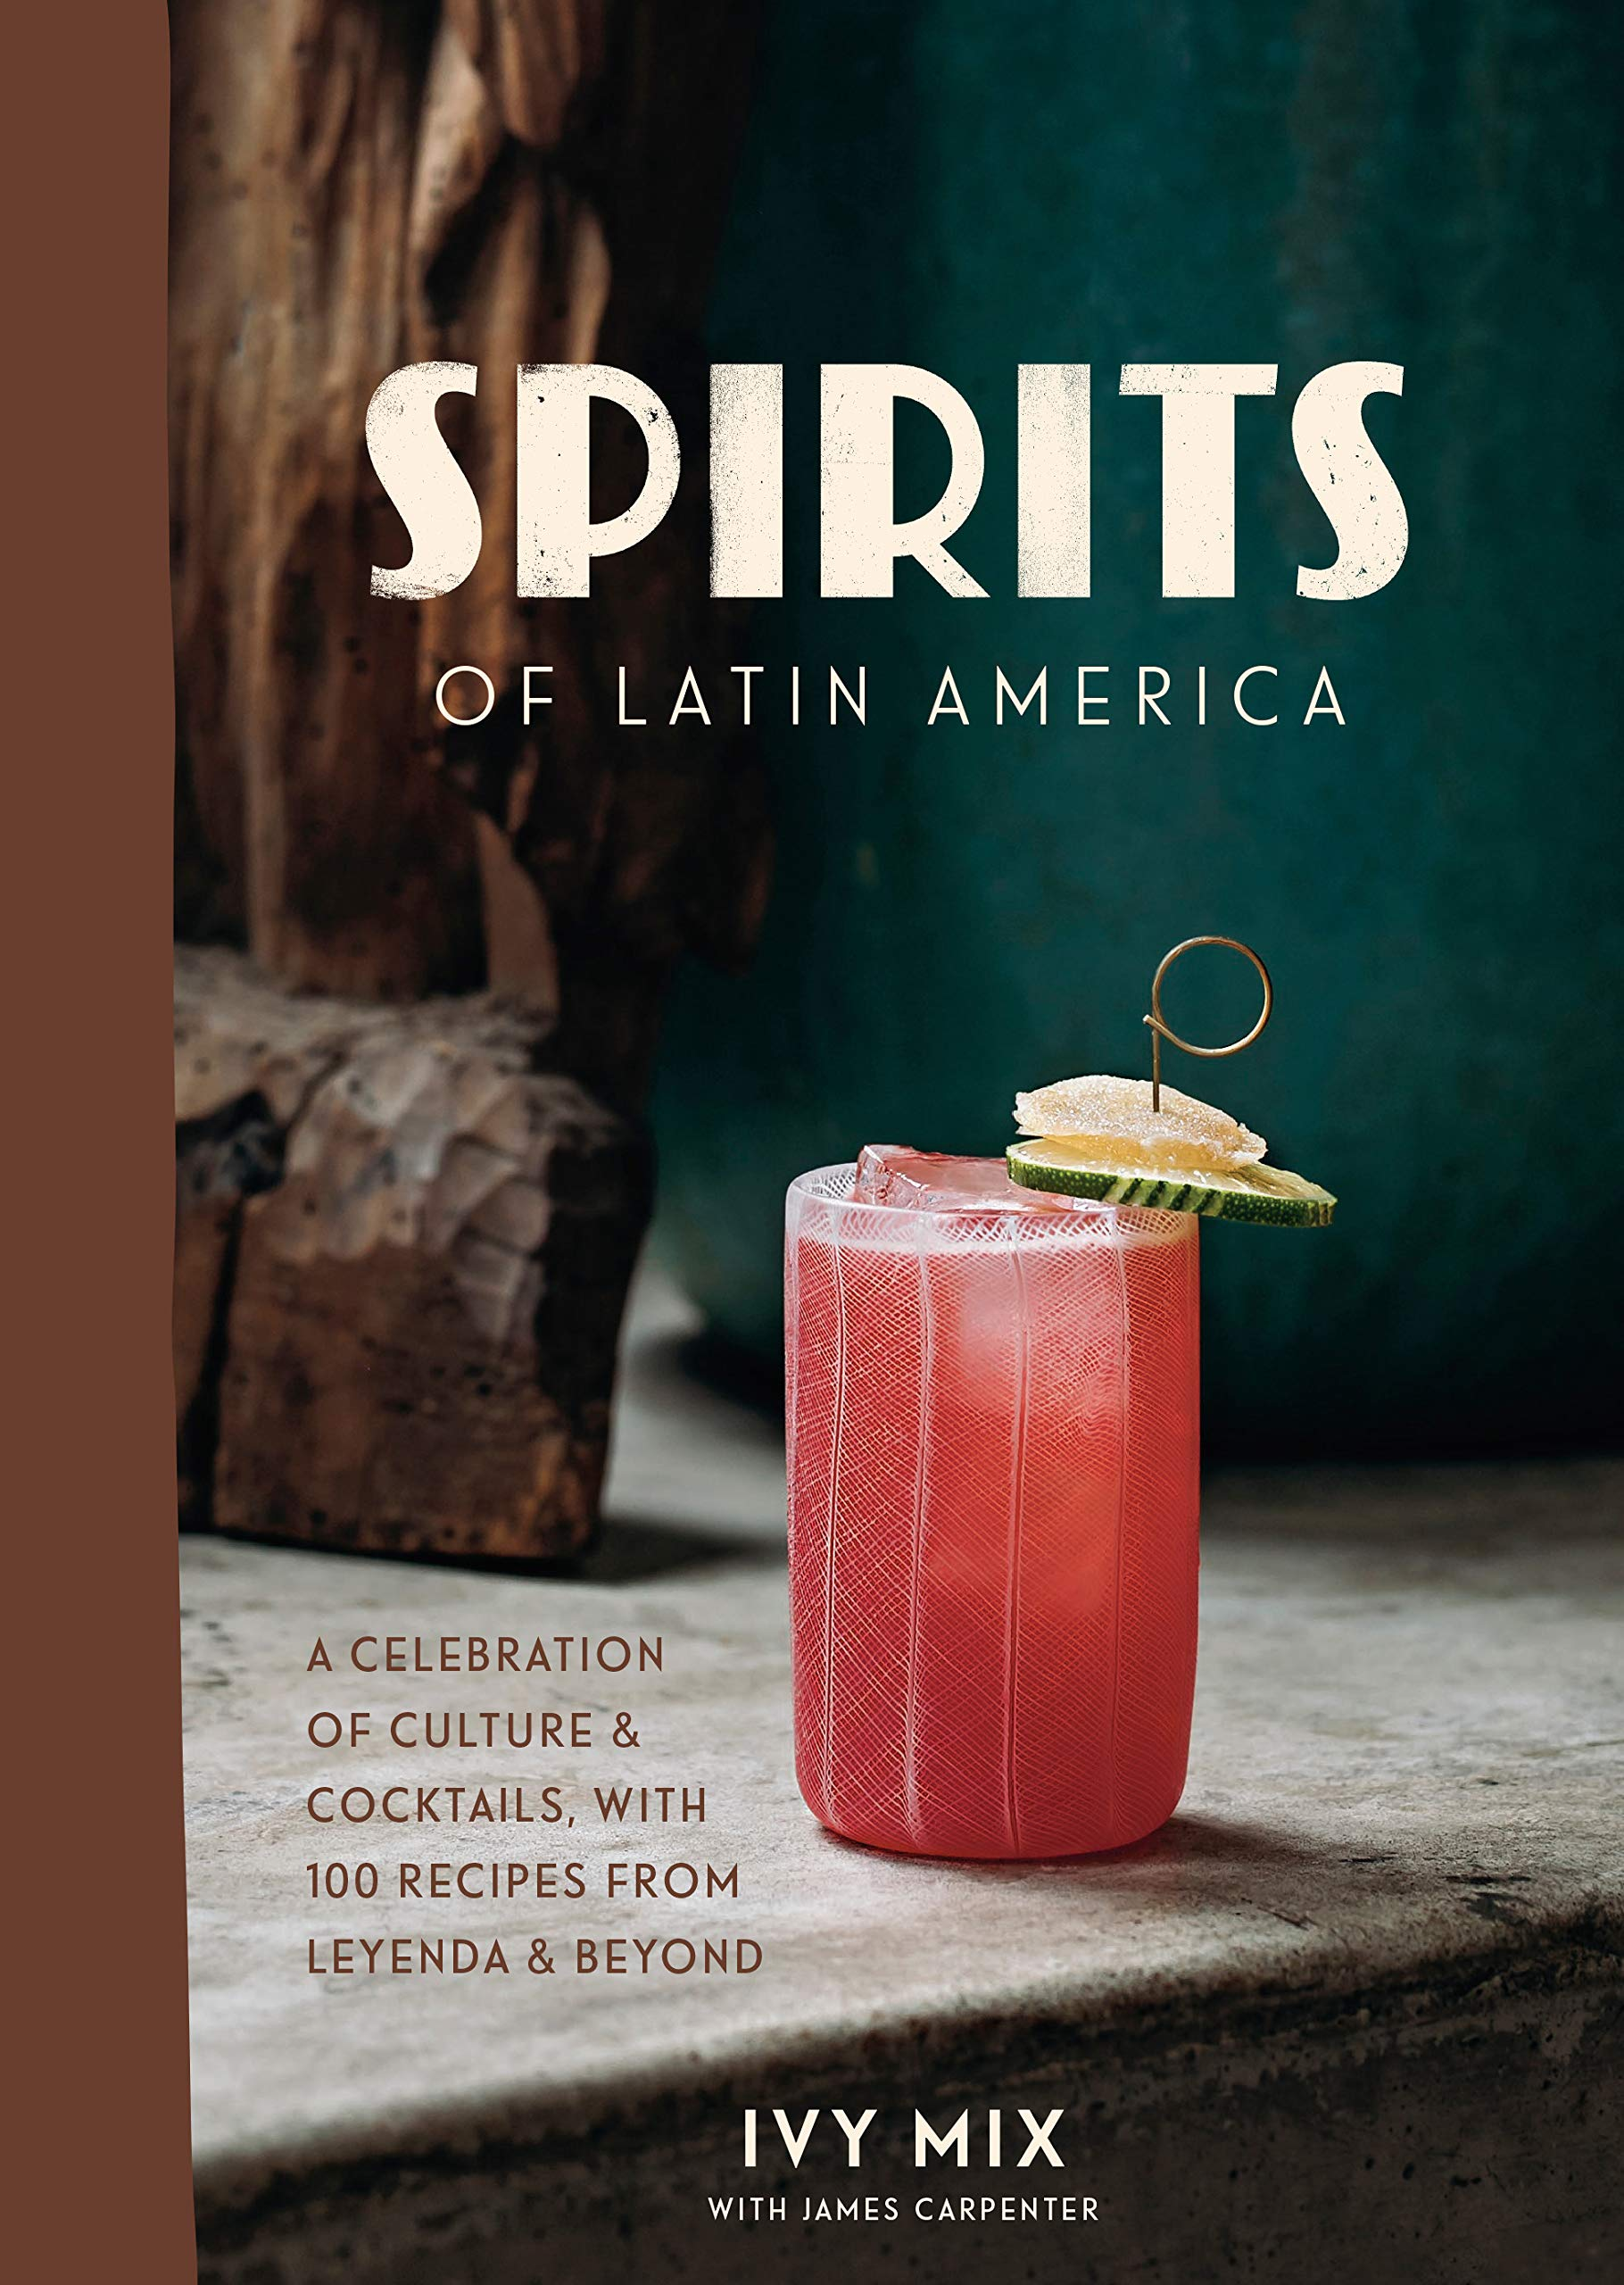 Spirits of Latin America: A Celebration of Culture & Cocktails, with 100 Recipes from Leyenda & Beyond